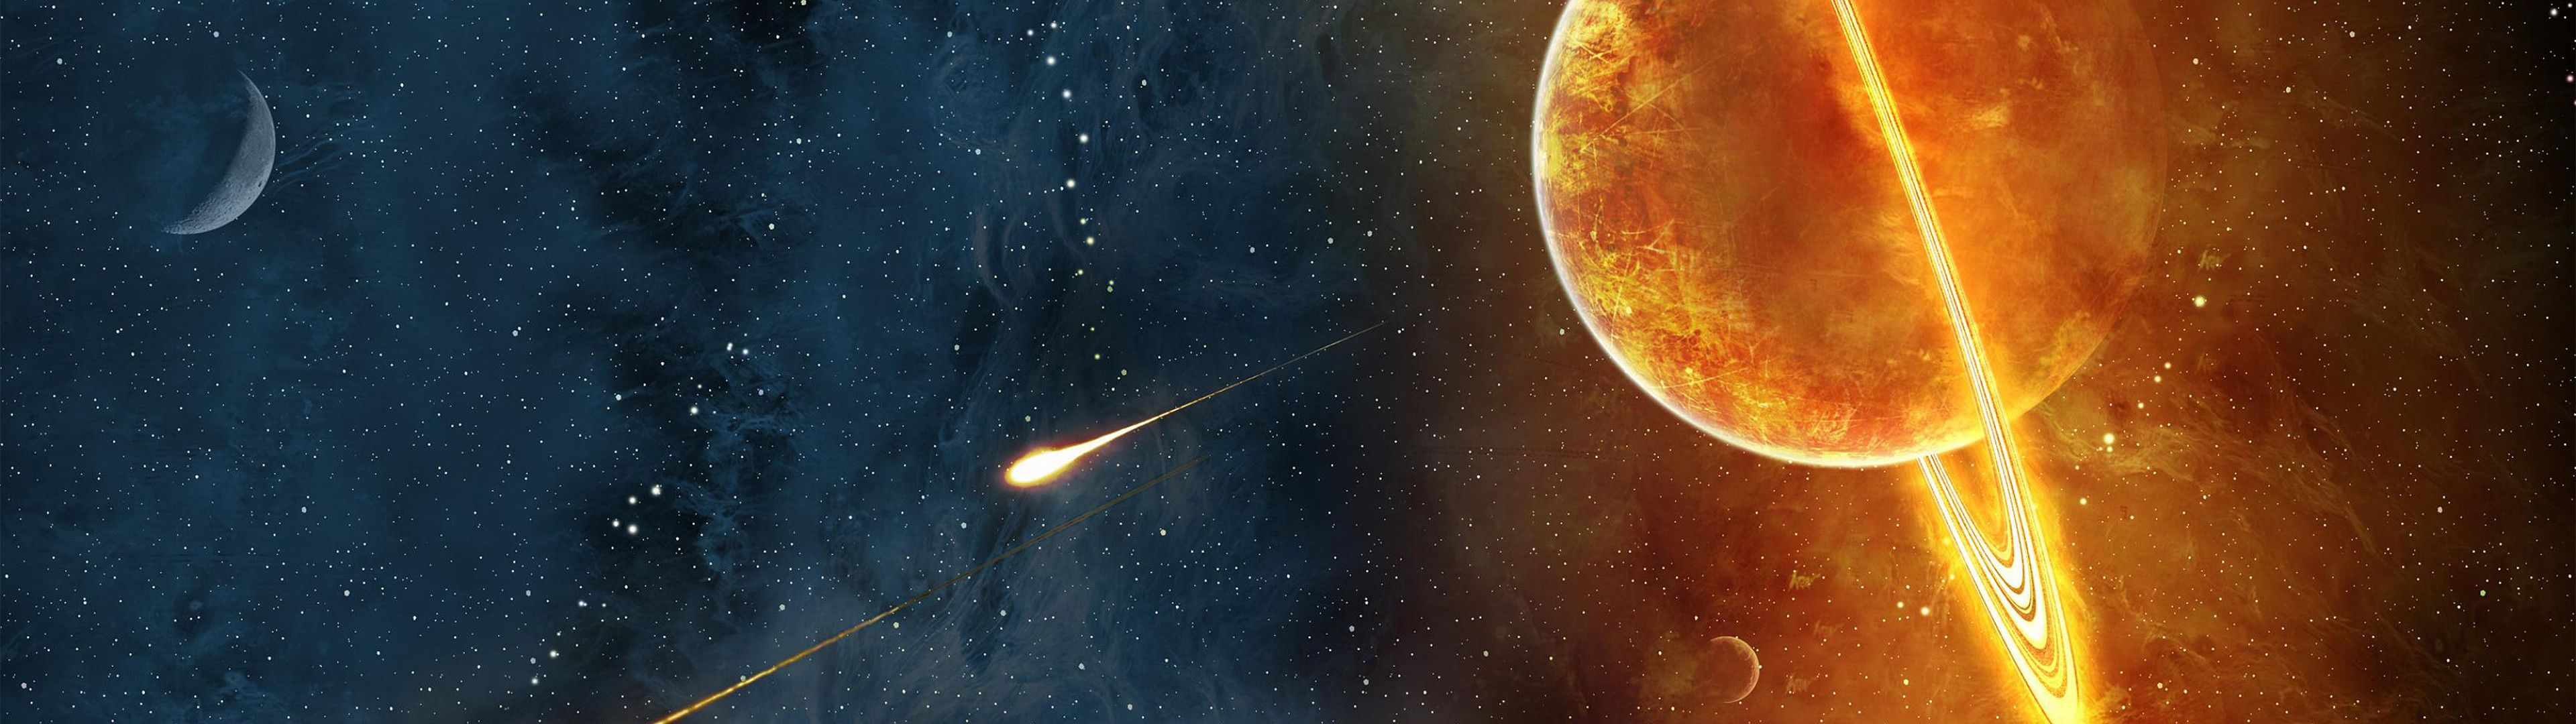 wallpaper para 2 monitores,outer space,universe,astronomical object,atmosphere,space